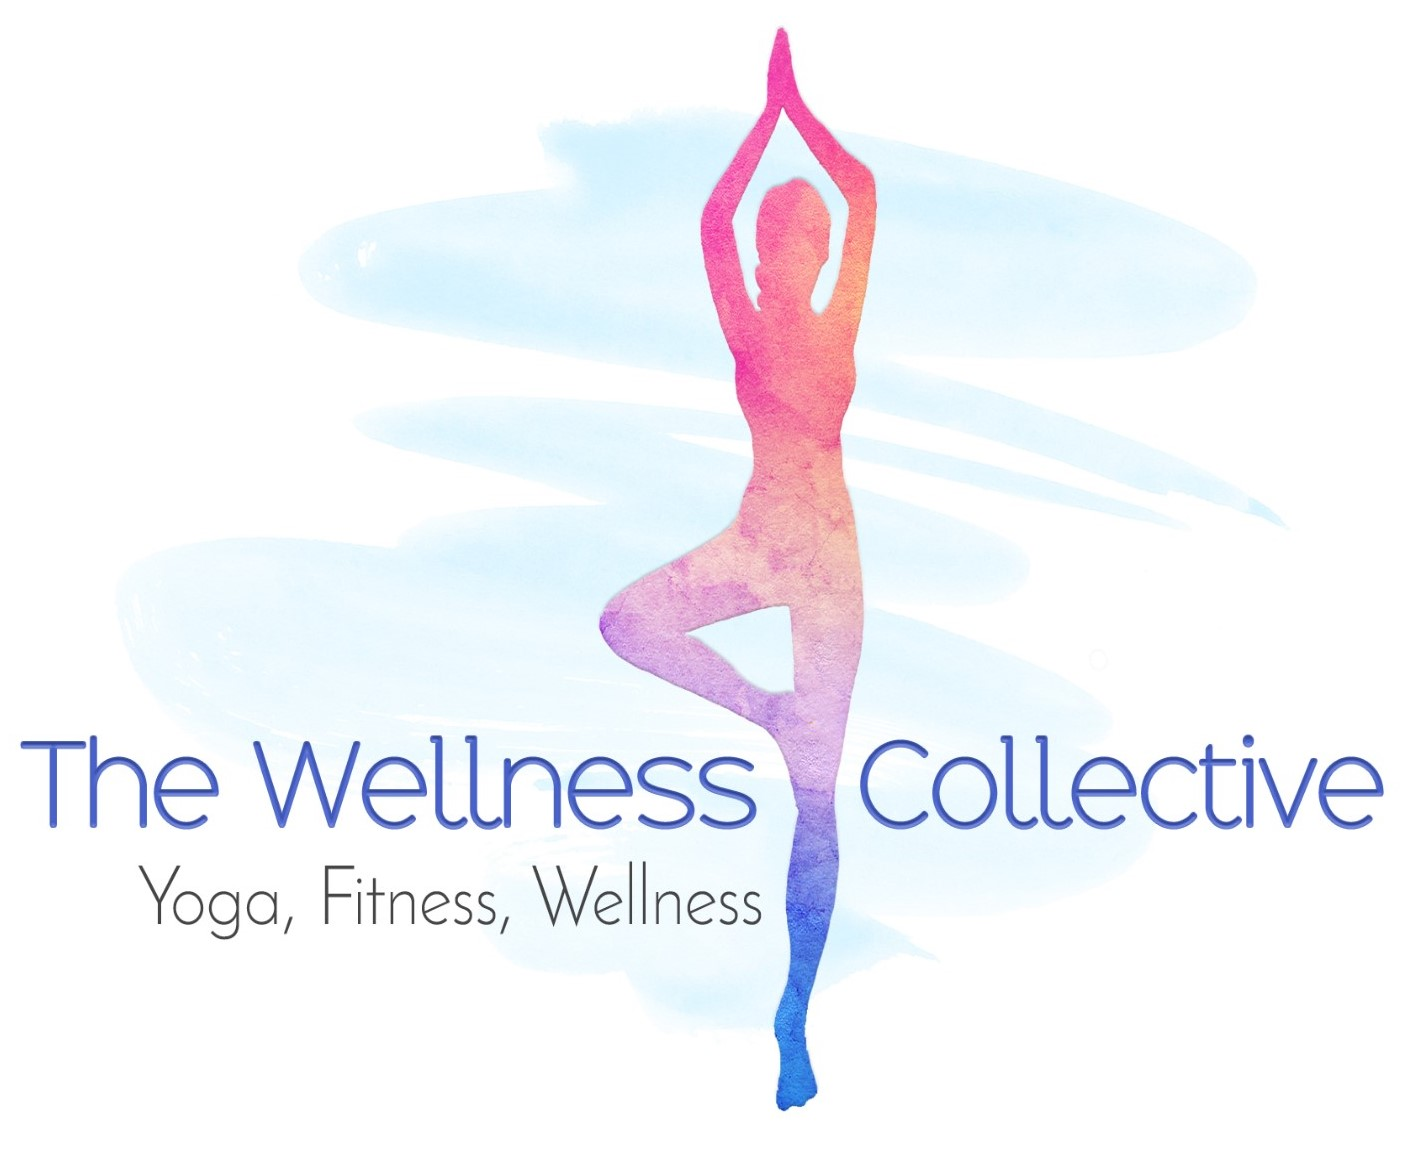 The Wellness Collective logo